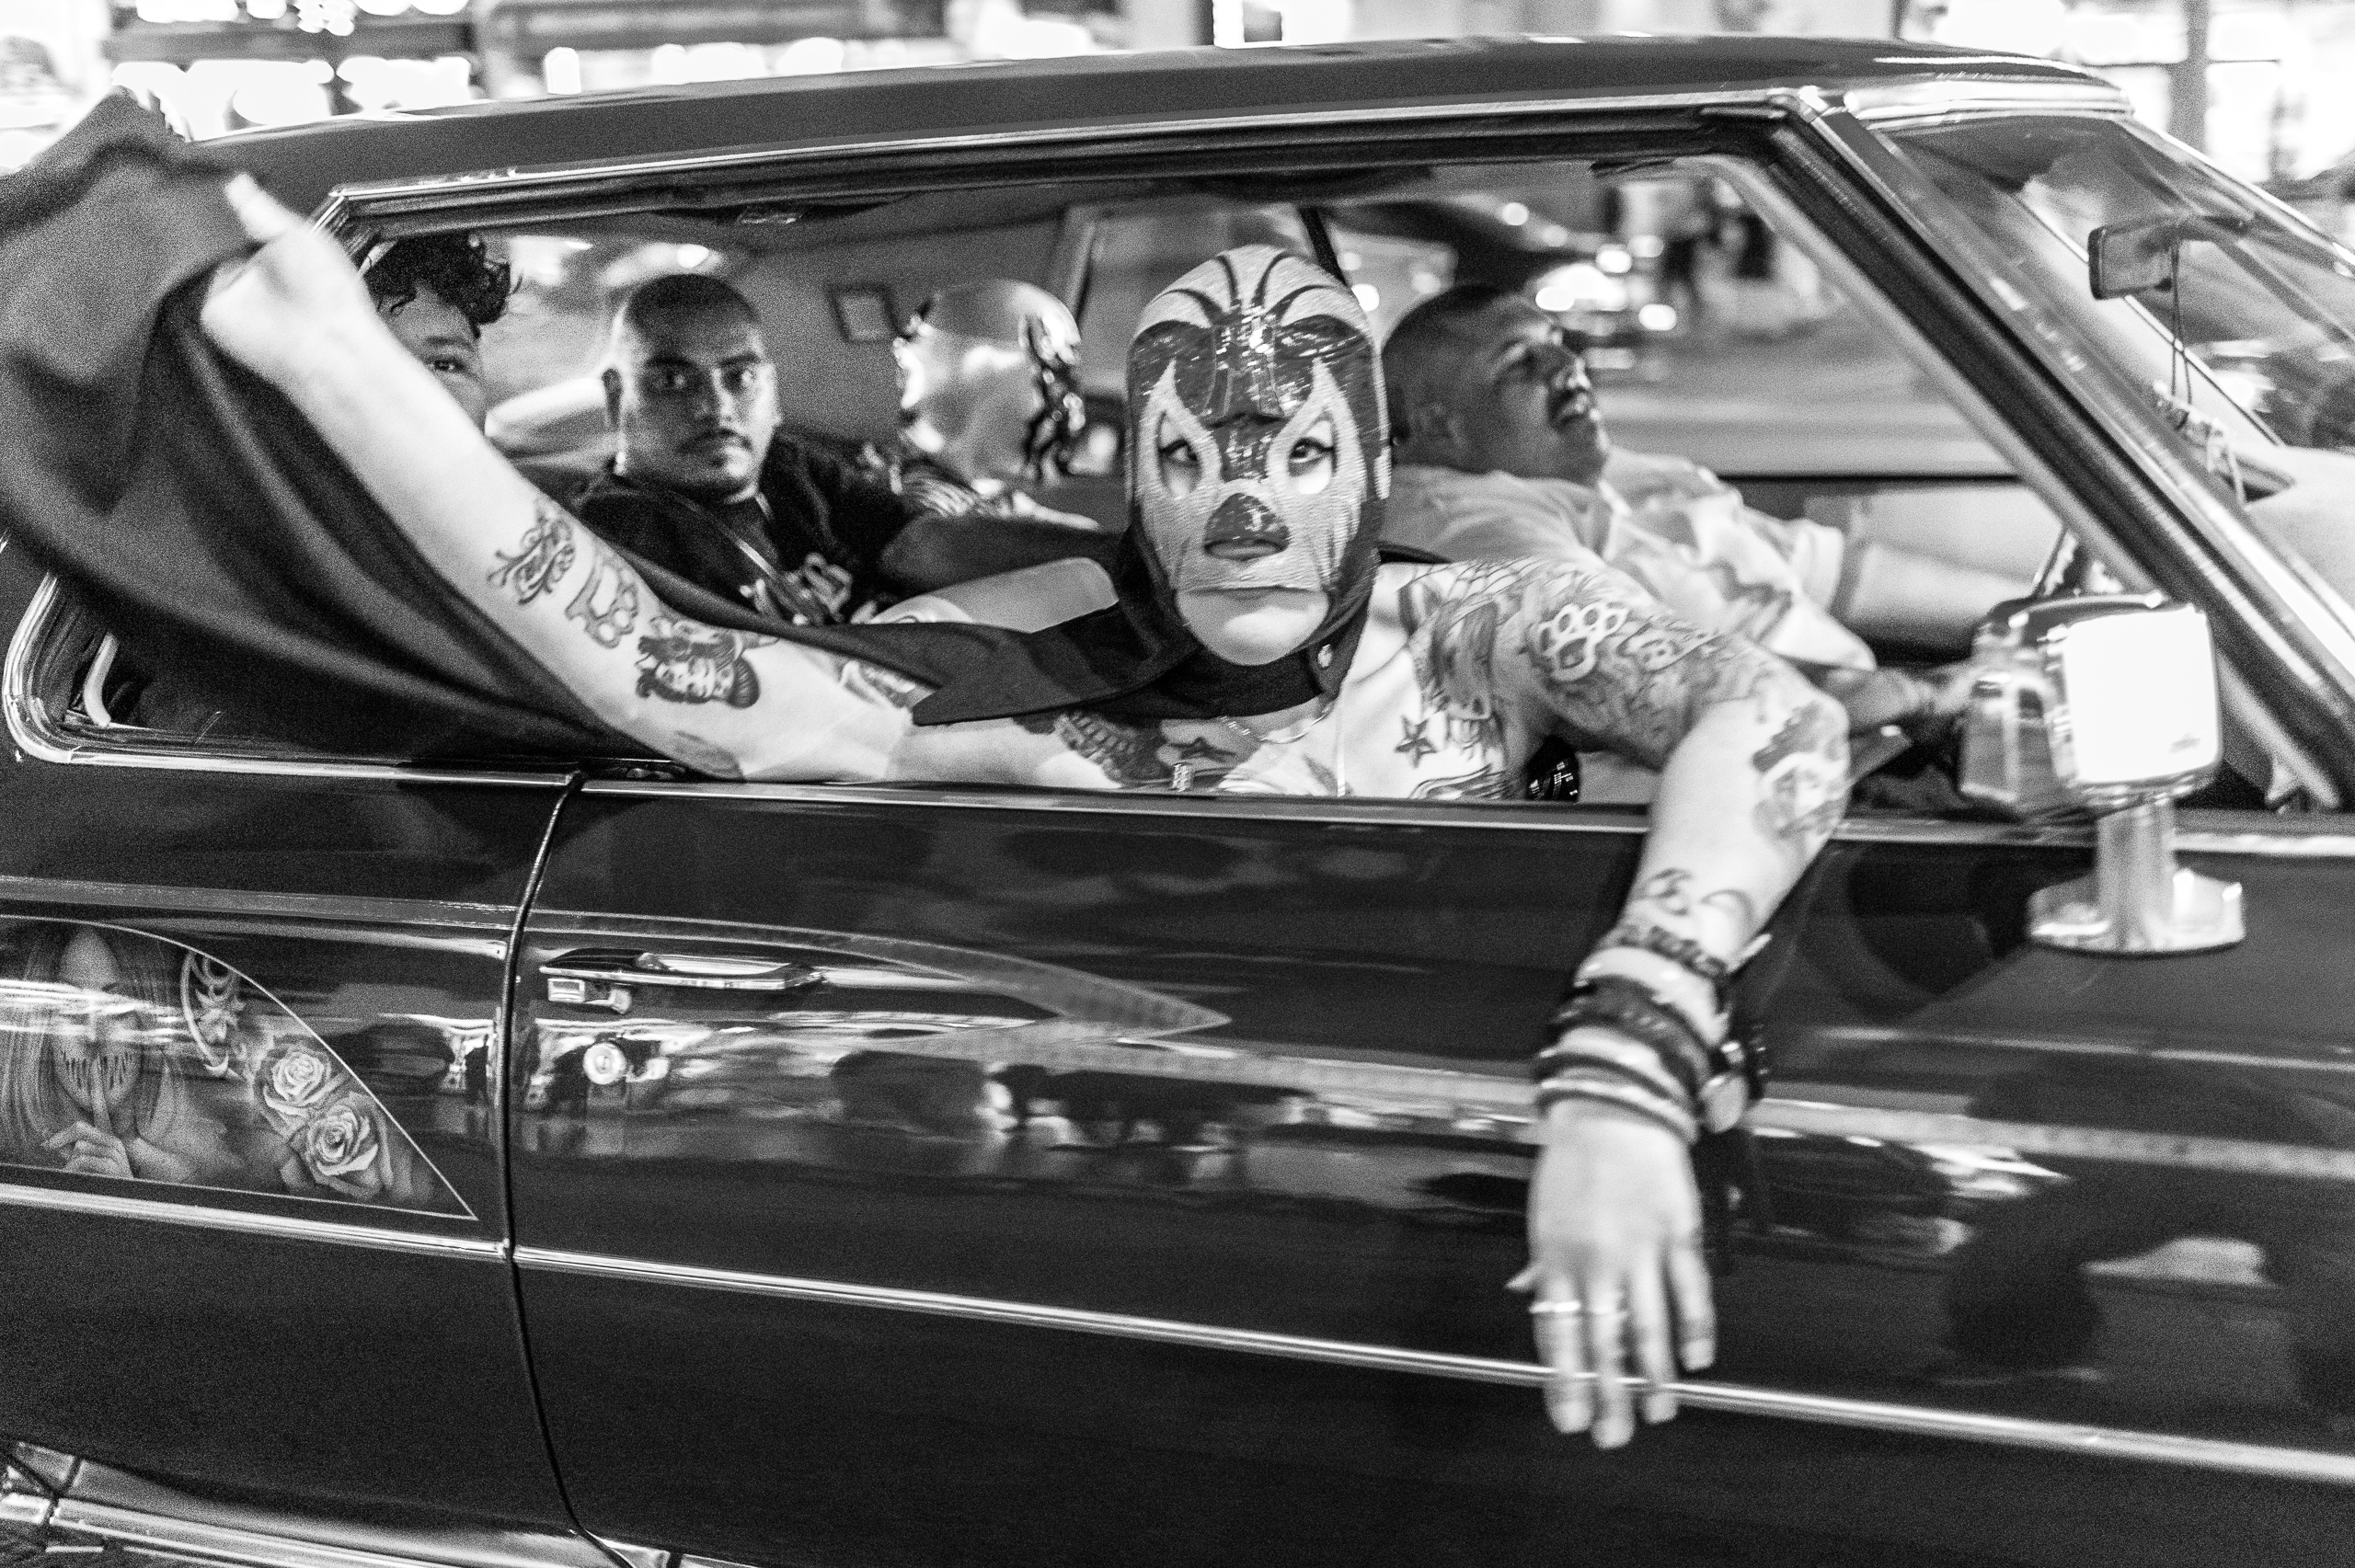 a guy in a Lucha Libre mask sticks his head out the car window and holds his cape in the breeze as his car moves down Hollywood Blvd.